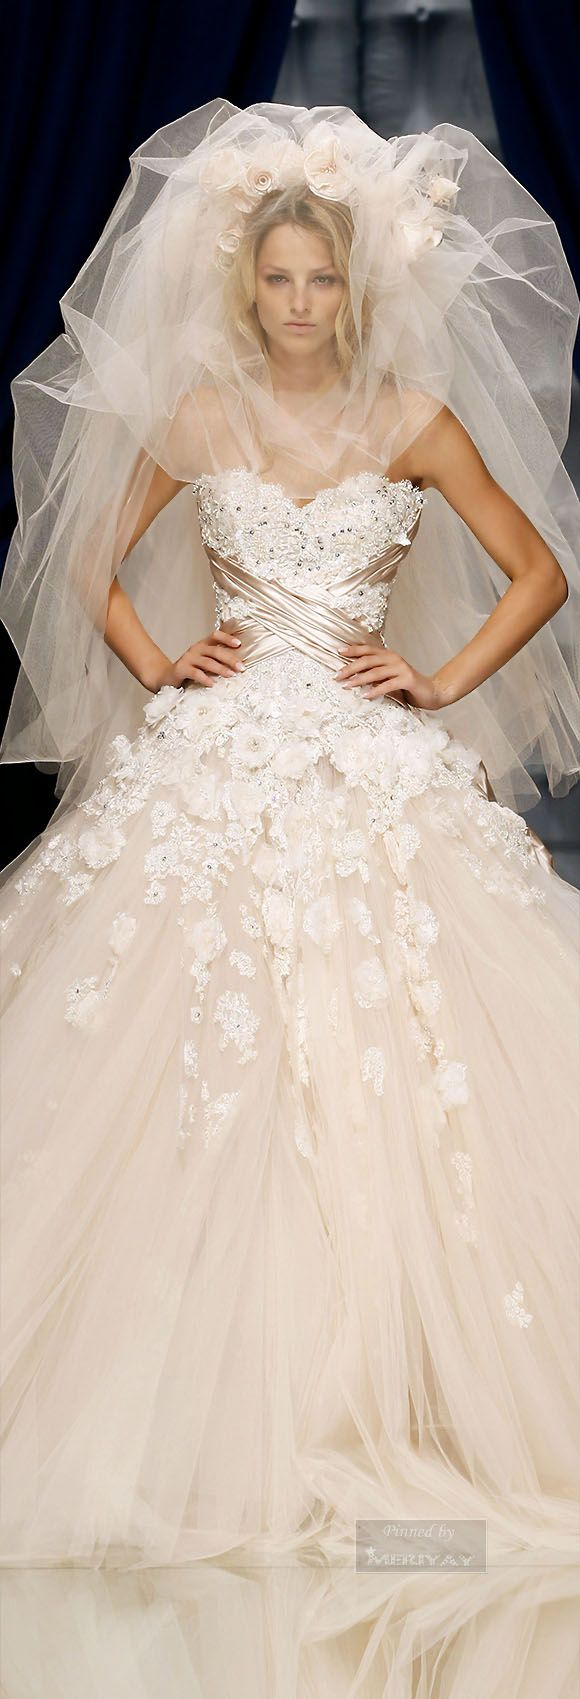 Zuhair murad bridal dress wishes pinterest zuhair murad